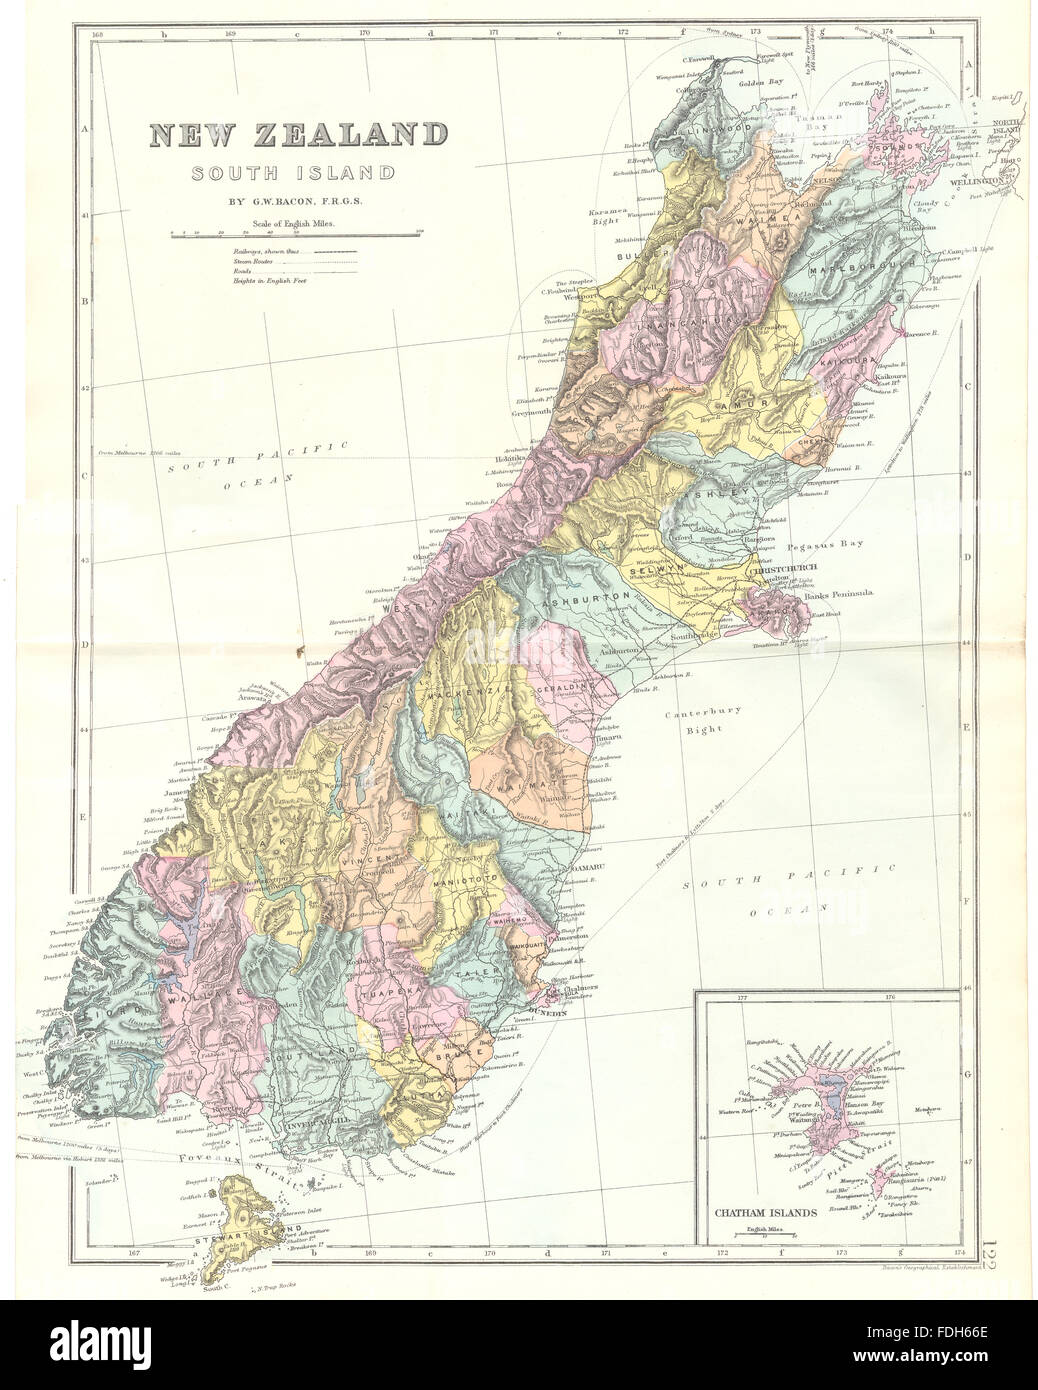 NEW ZEALAND New Zealand South Island Inset map of Chatham